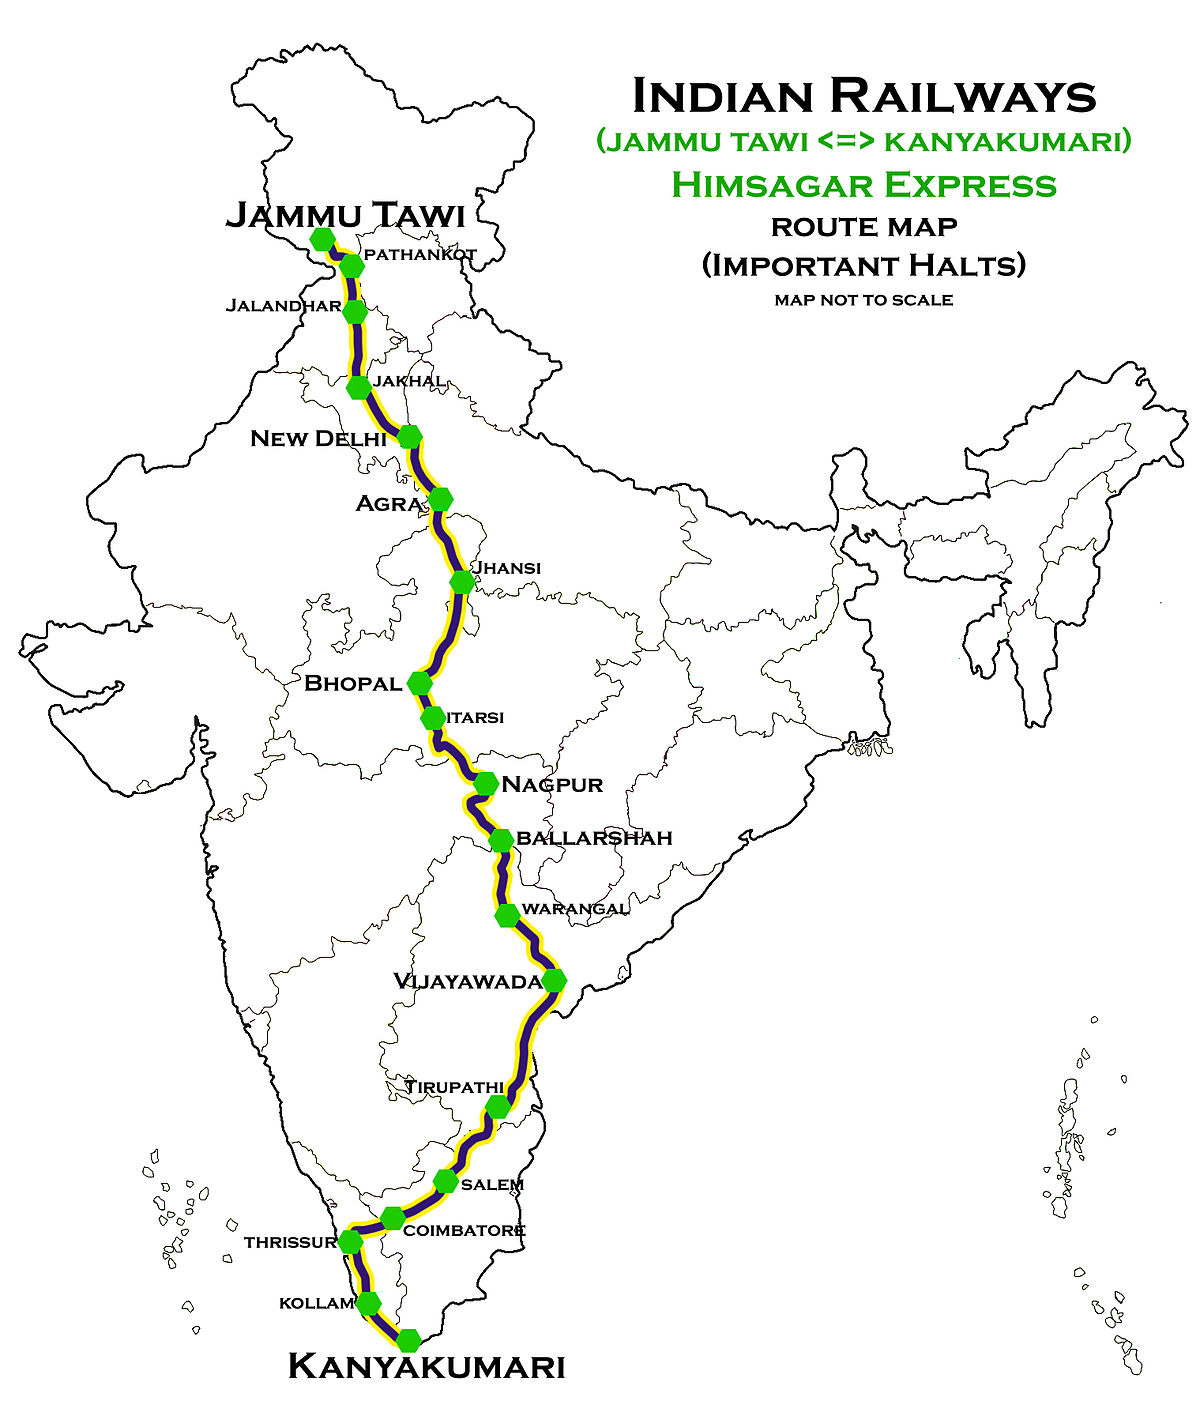 Train Route Map Between Two Stations Himsagar Express   Wikipedia